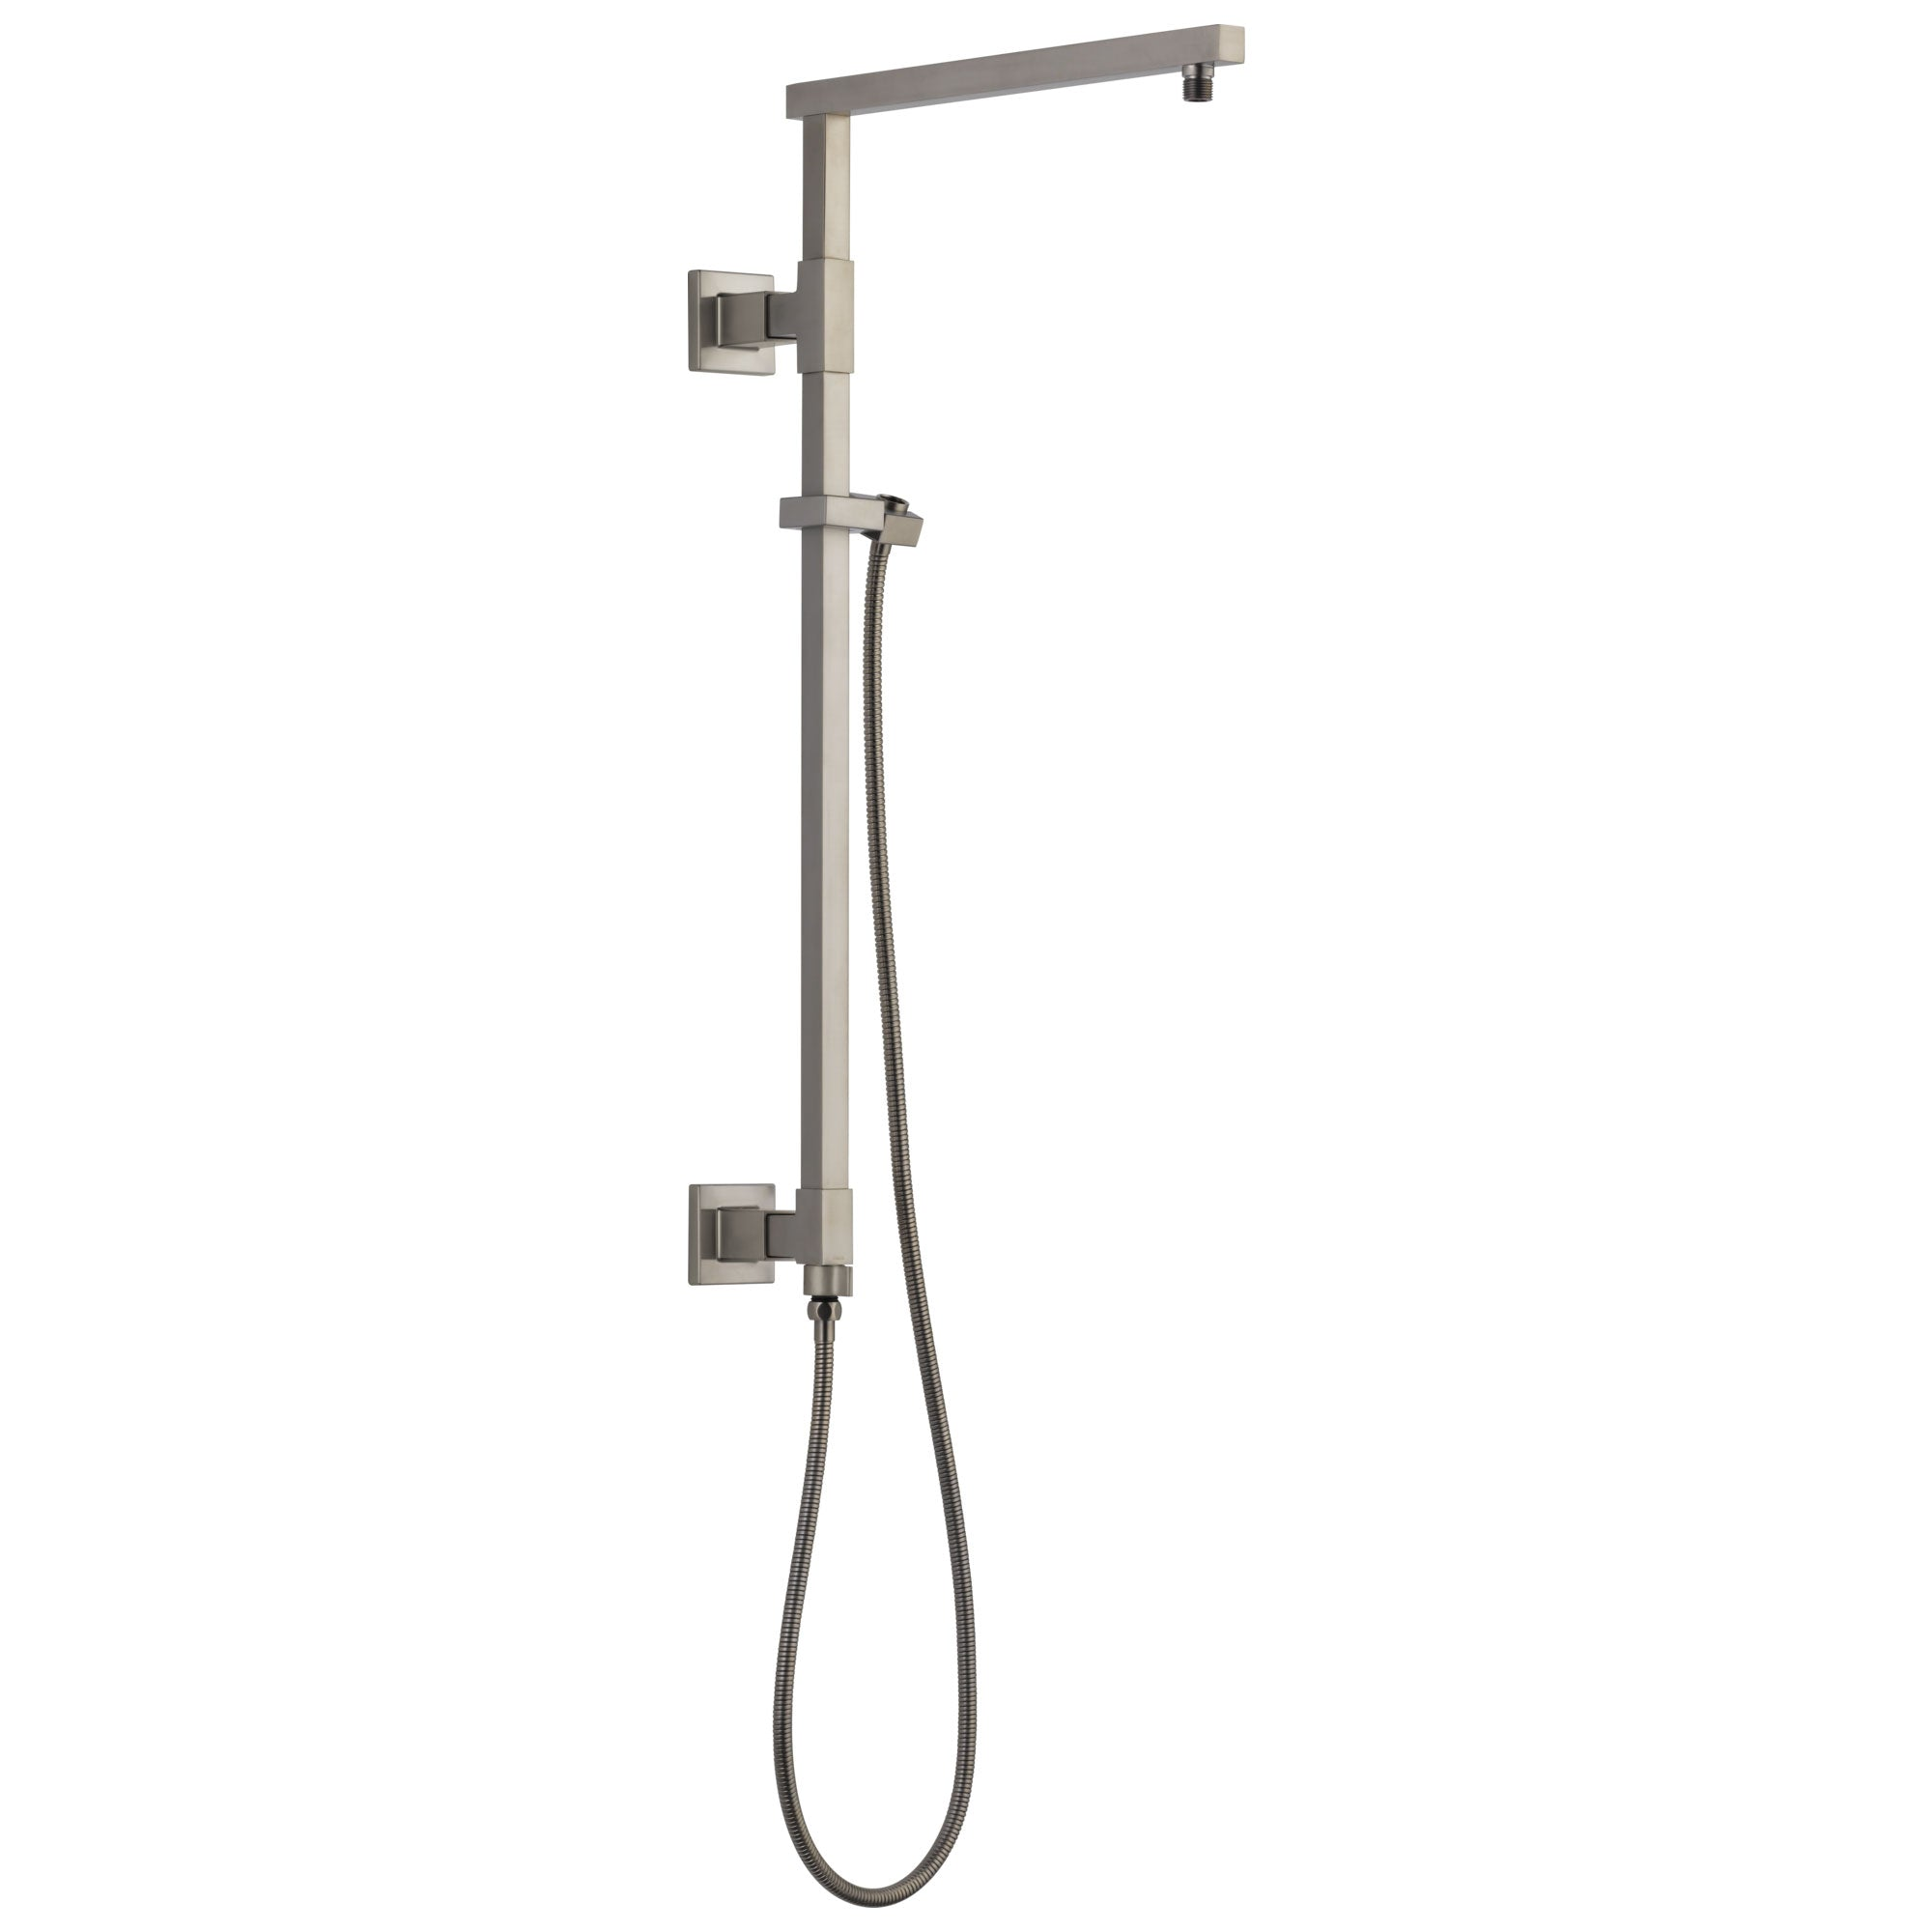 "Delta Stainless Steel Finish Emerge Modern Angular Square Shower Column 26"" (Requires Showerhead, Hand Spray, and Control) D58420SS"